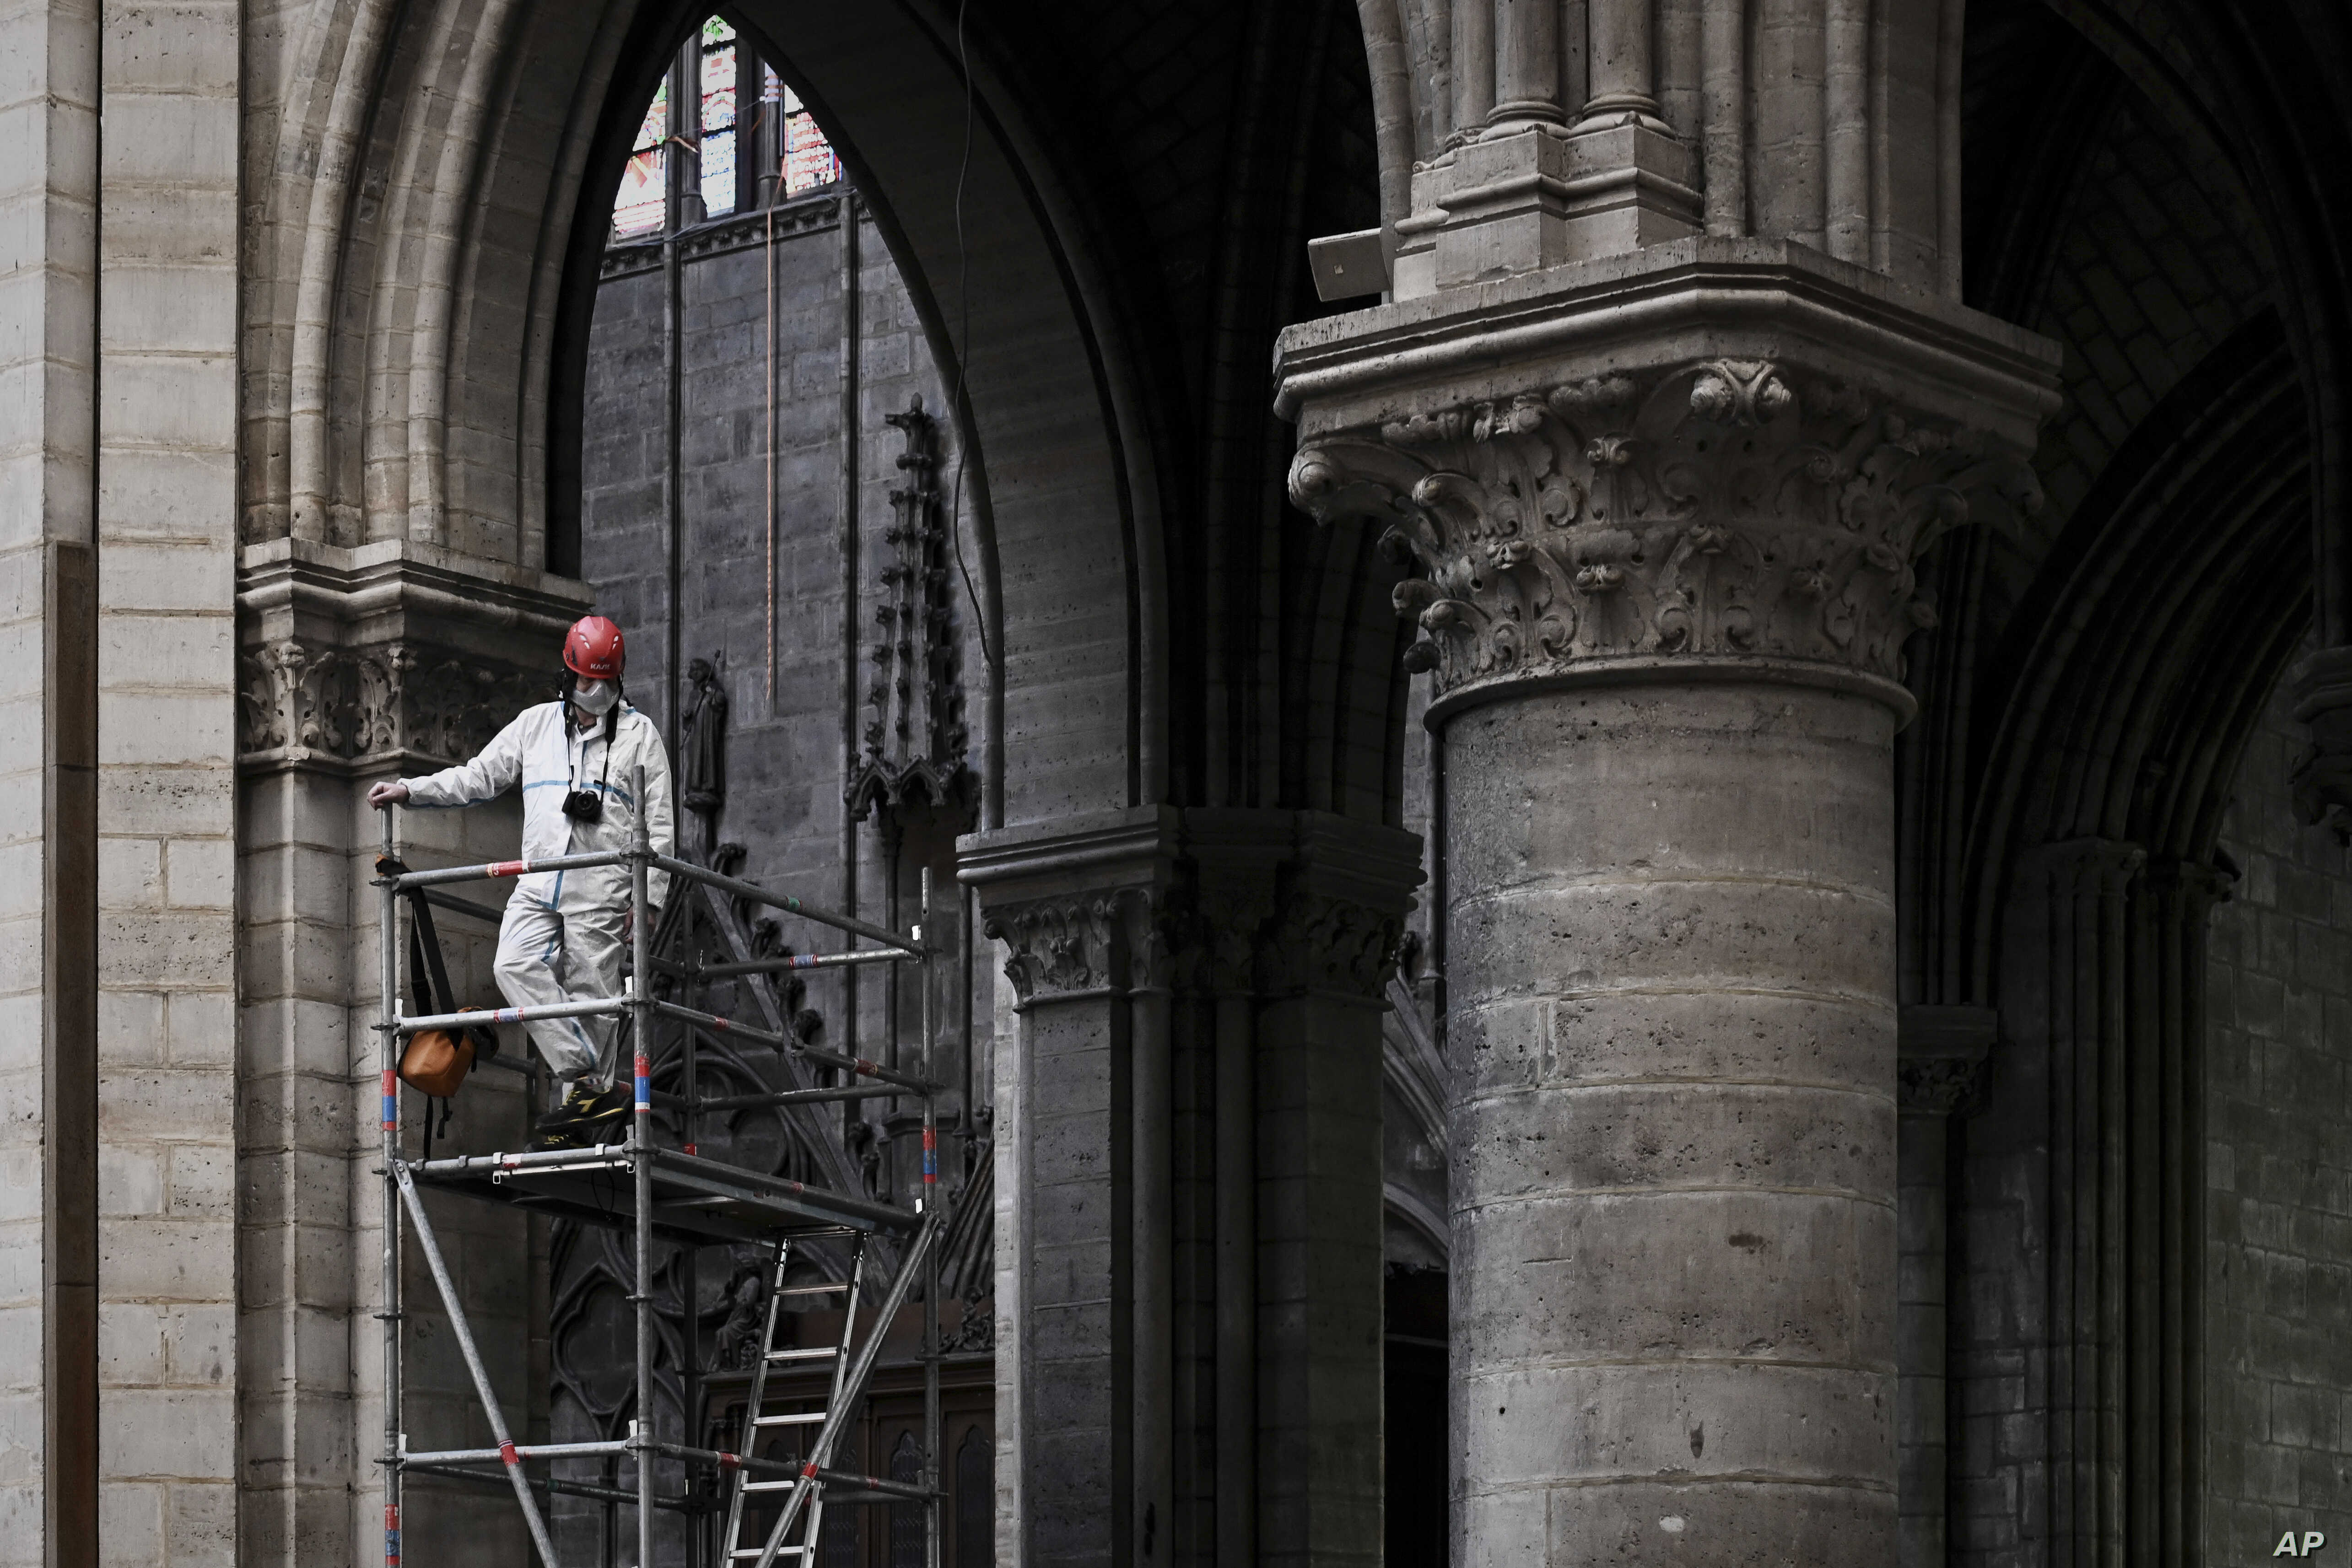 A worker stands on scaffolding during preliminary work inside the Notre Dame de Paris Cathedral, Wednesday May 15, 2019 in Paris.